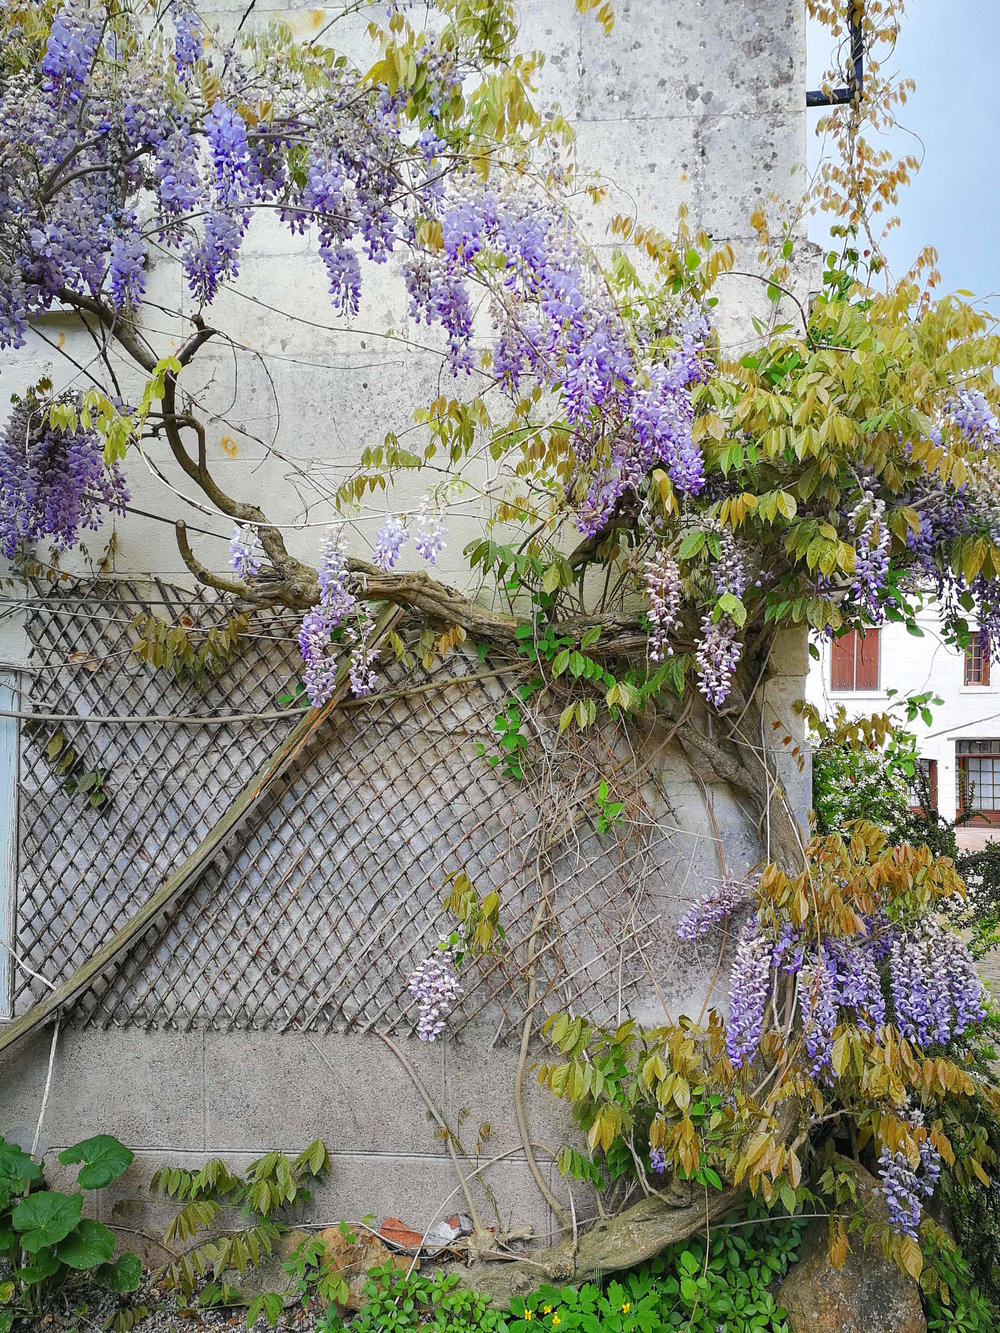 Springtime Wisteria in the Loire Valley